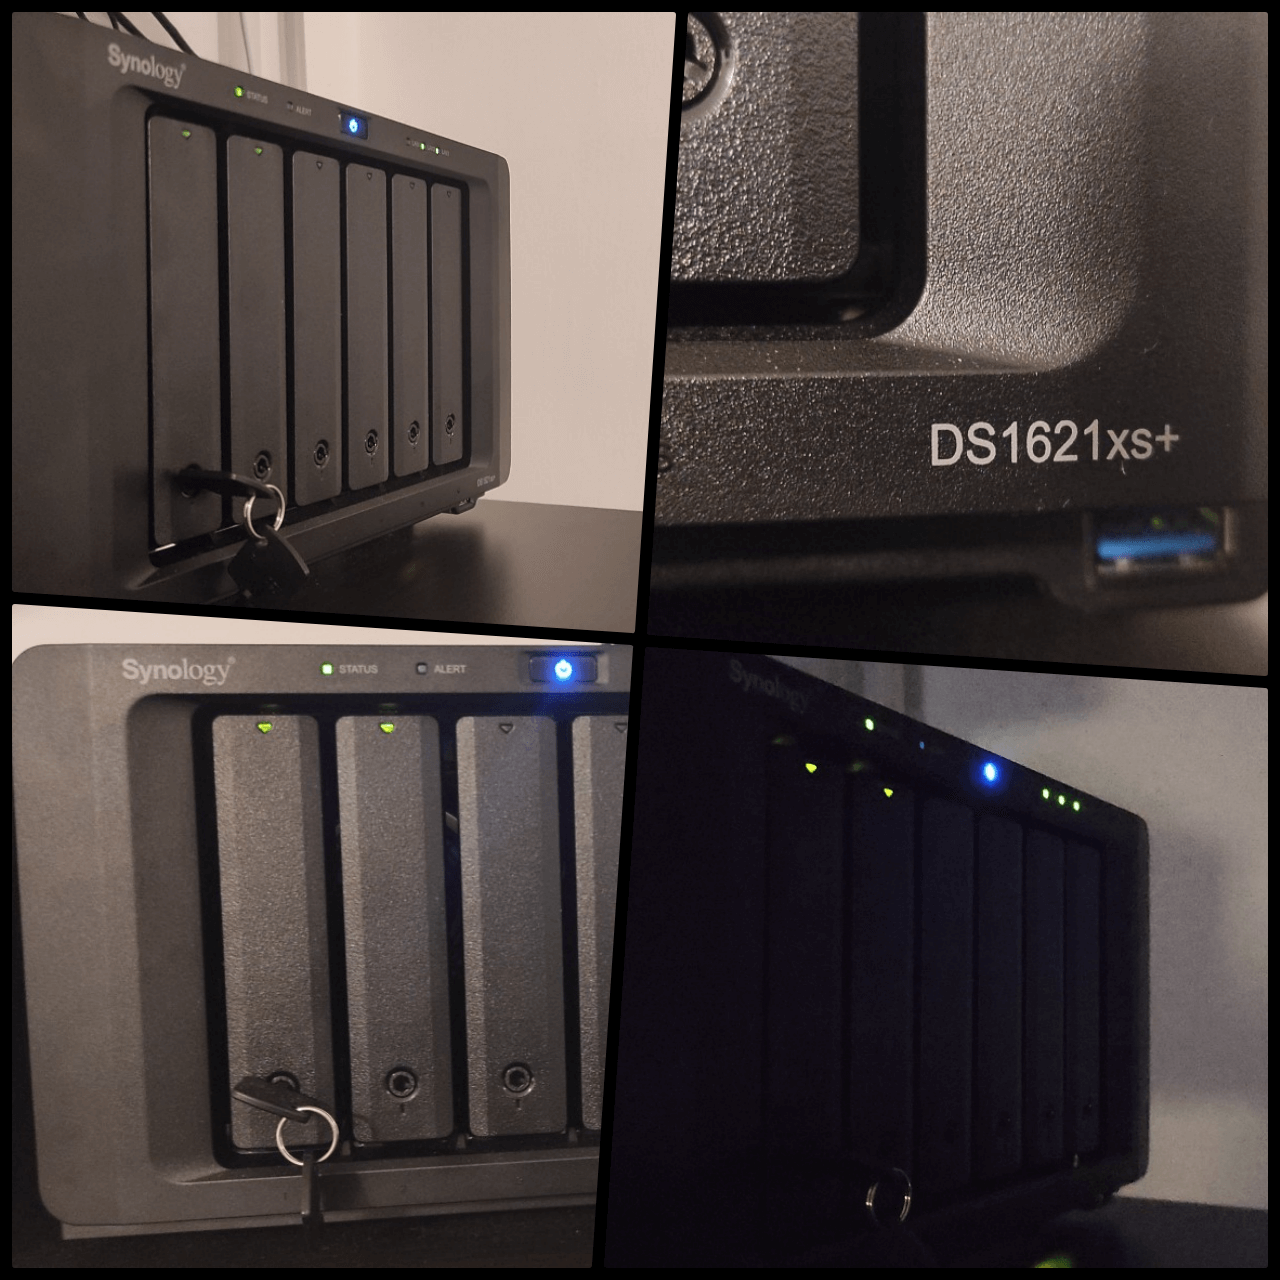 4 Synology NAS DS1621xs+ Review